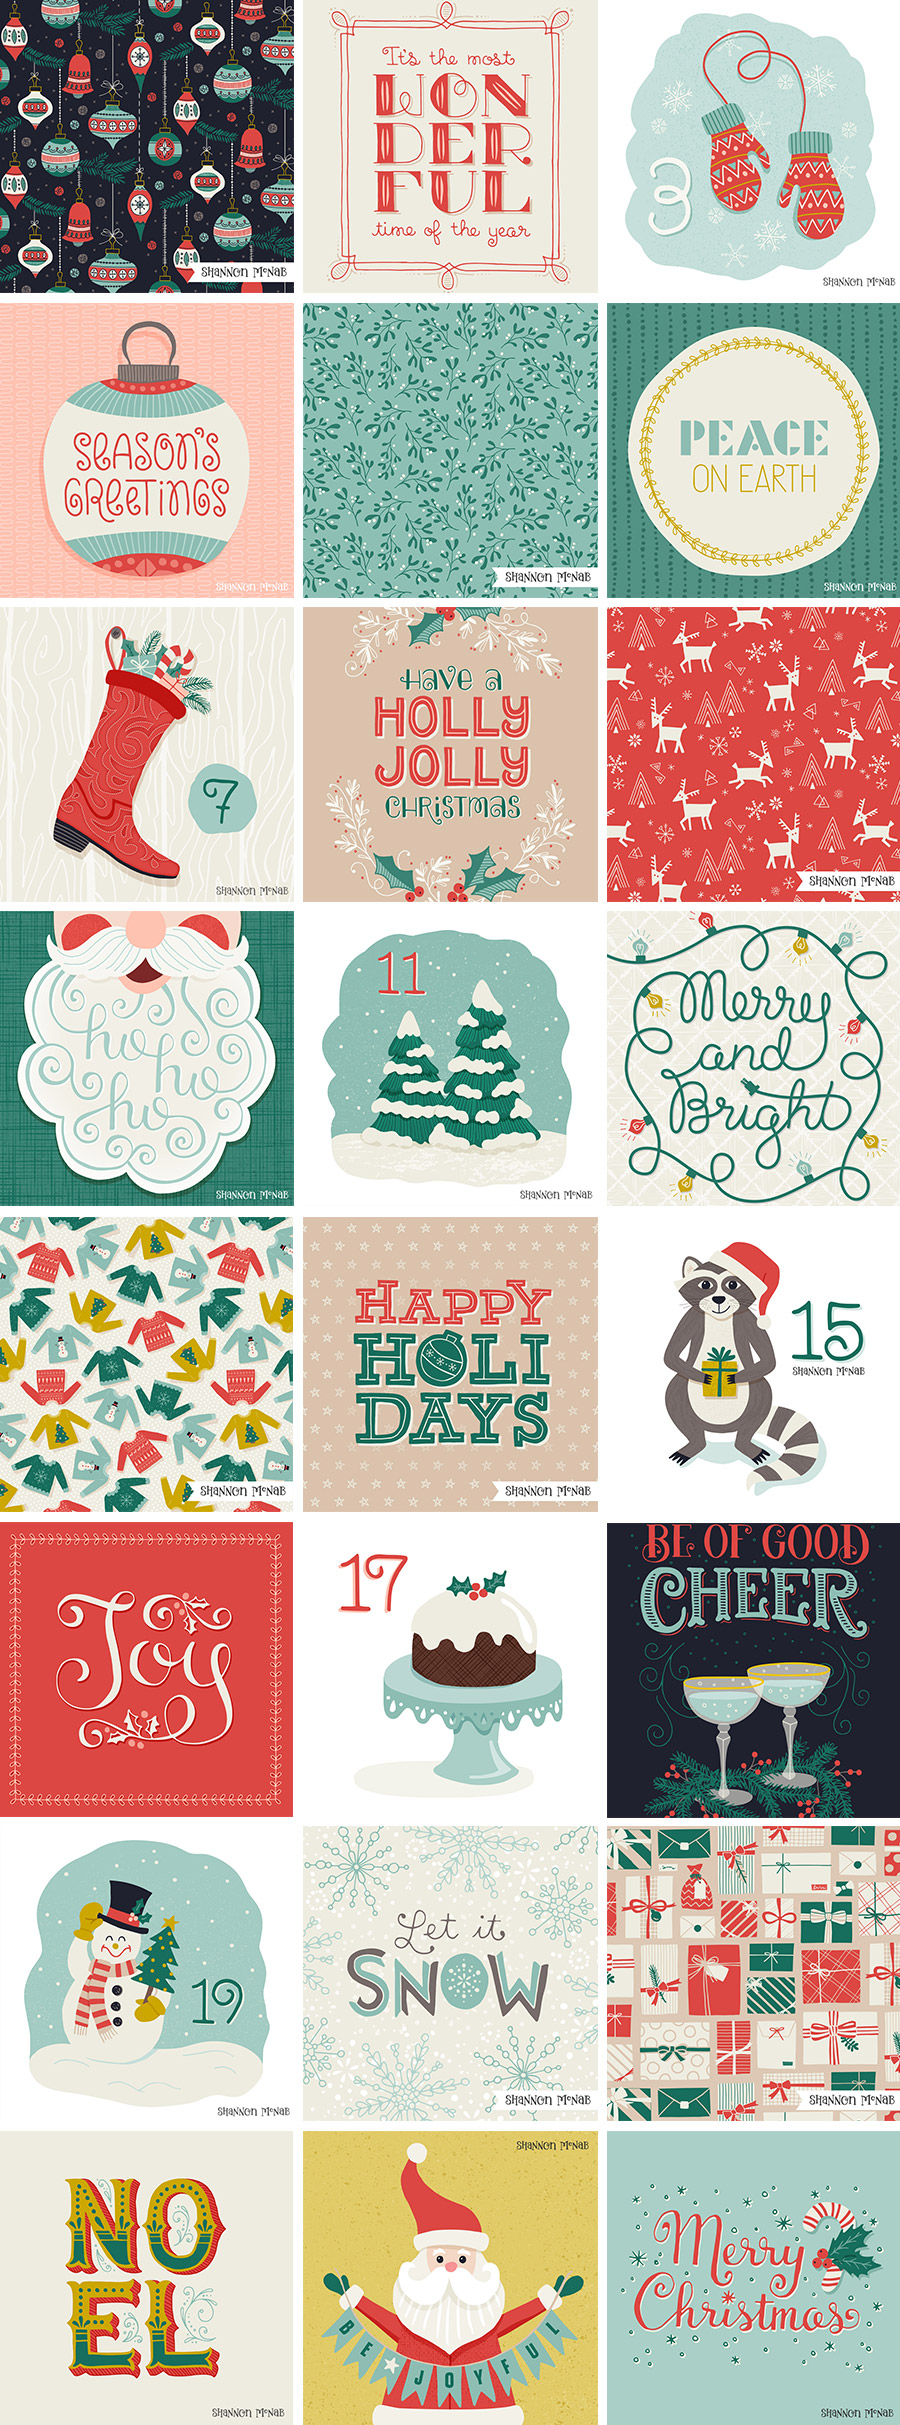 2016 Christmas Art Countdown Advent Challenge |  ©2016 Shannon McNab